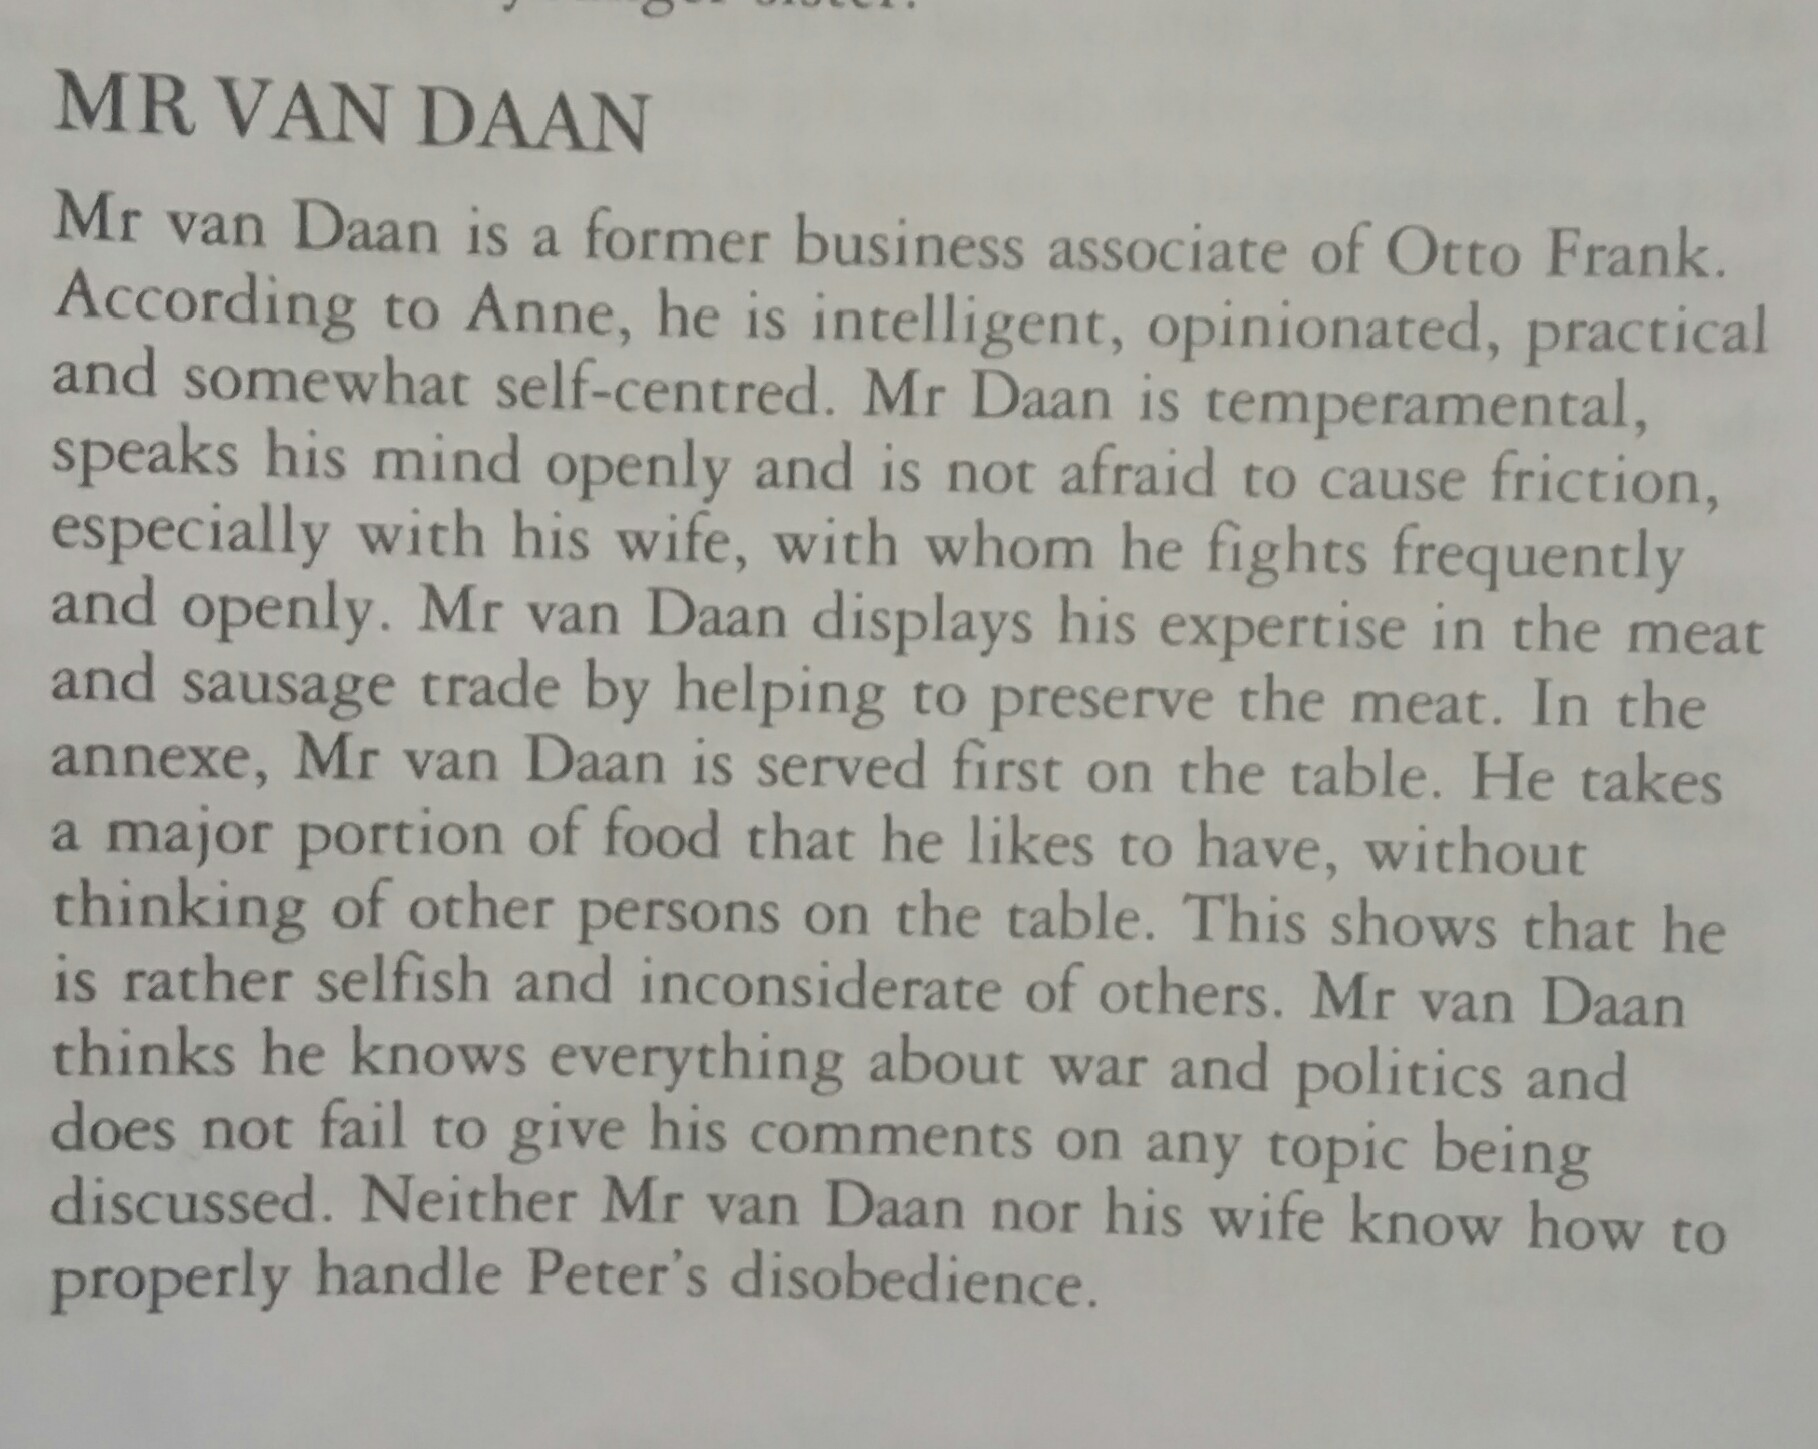 Write a character sketch of Mr Van Daan.(The Diary of a